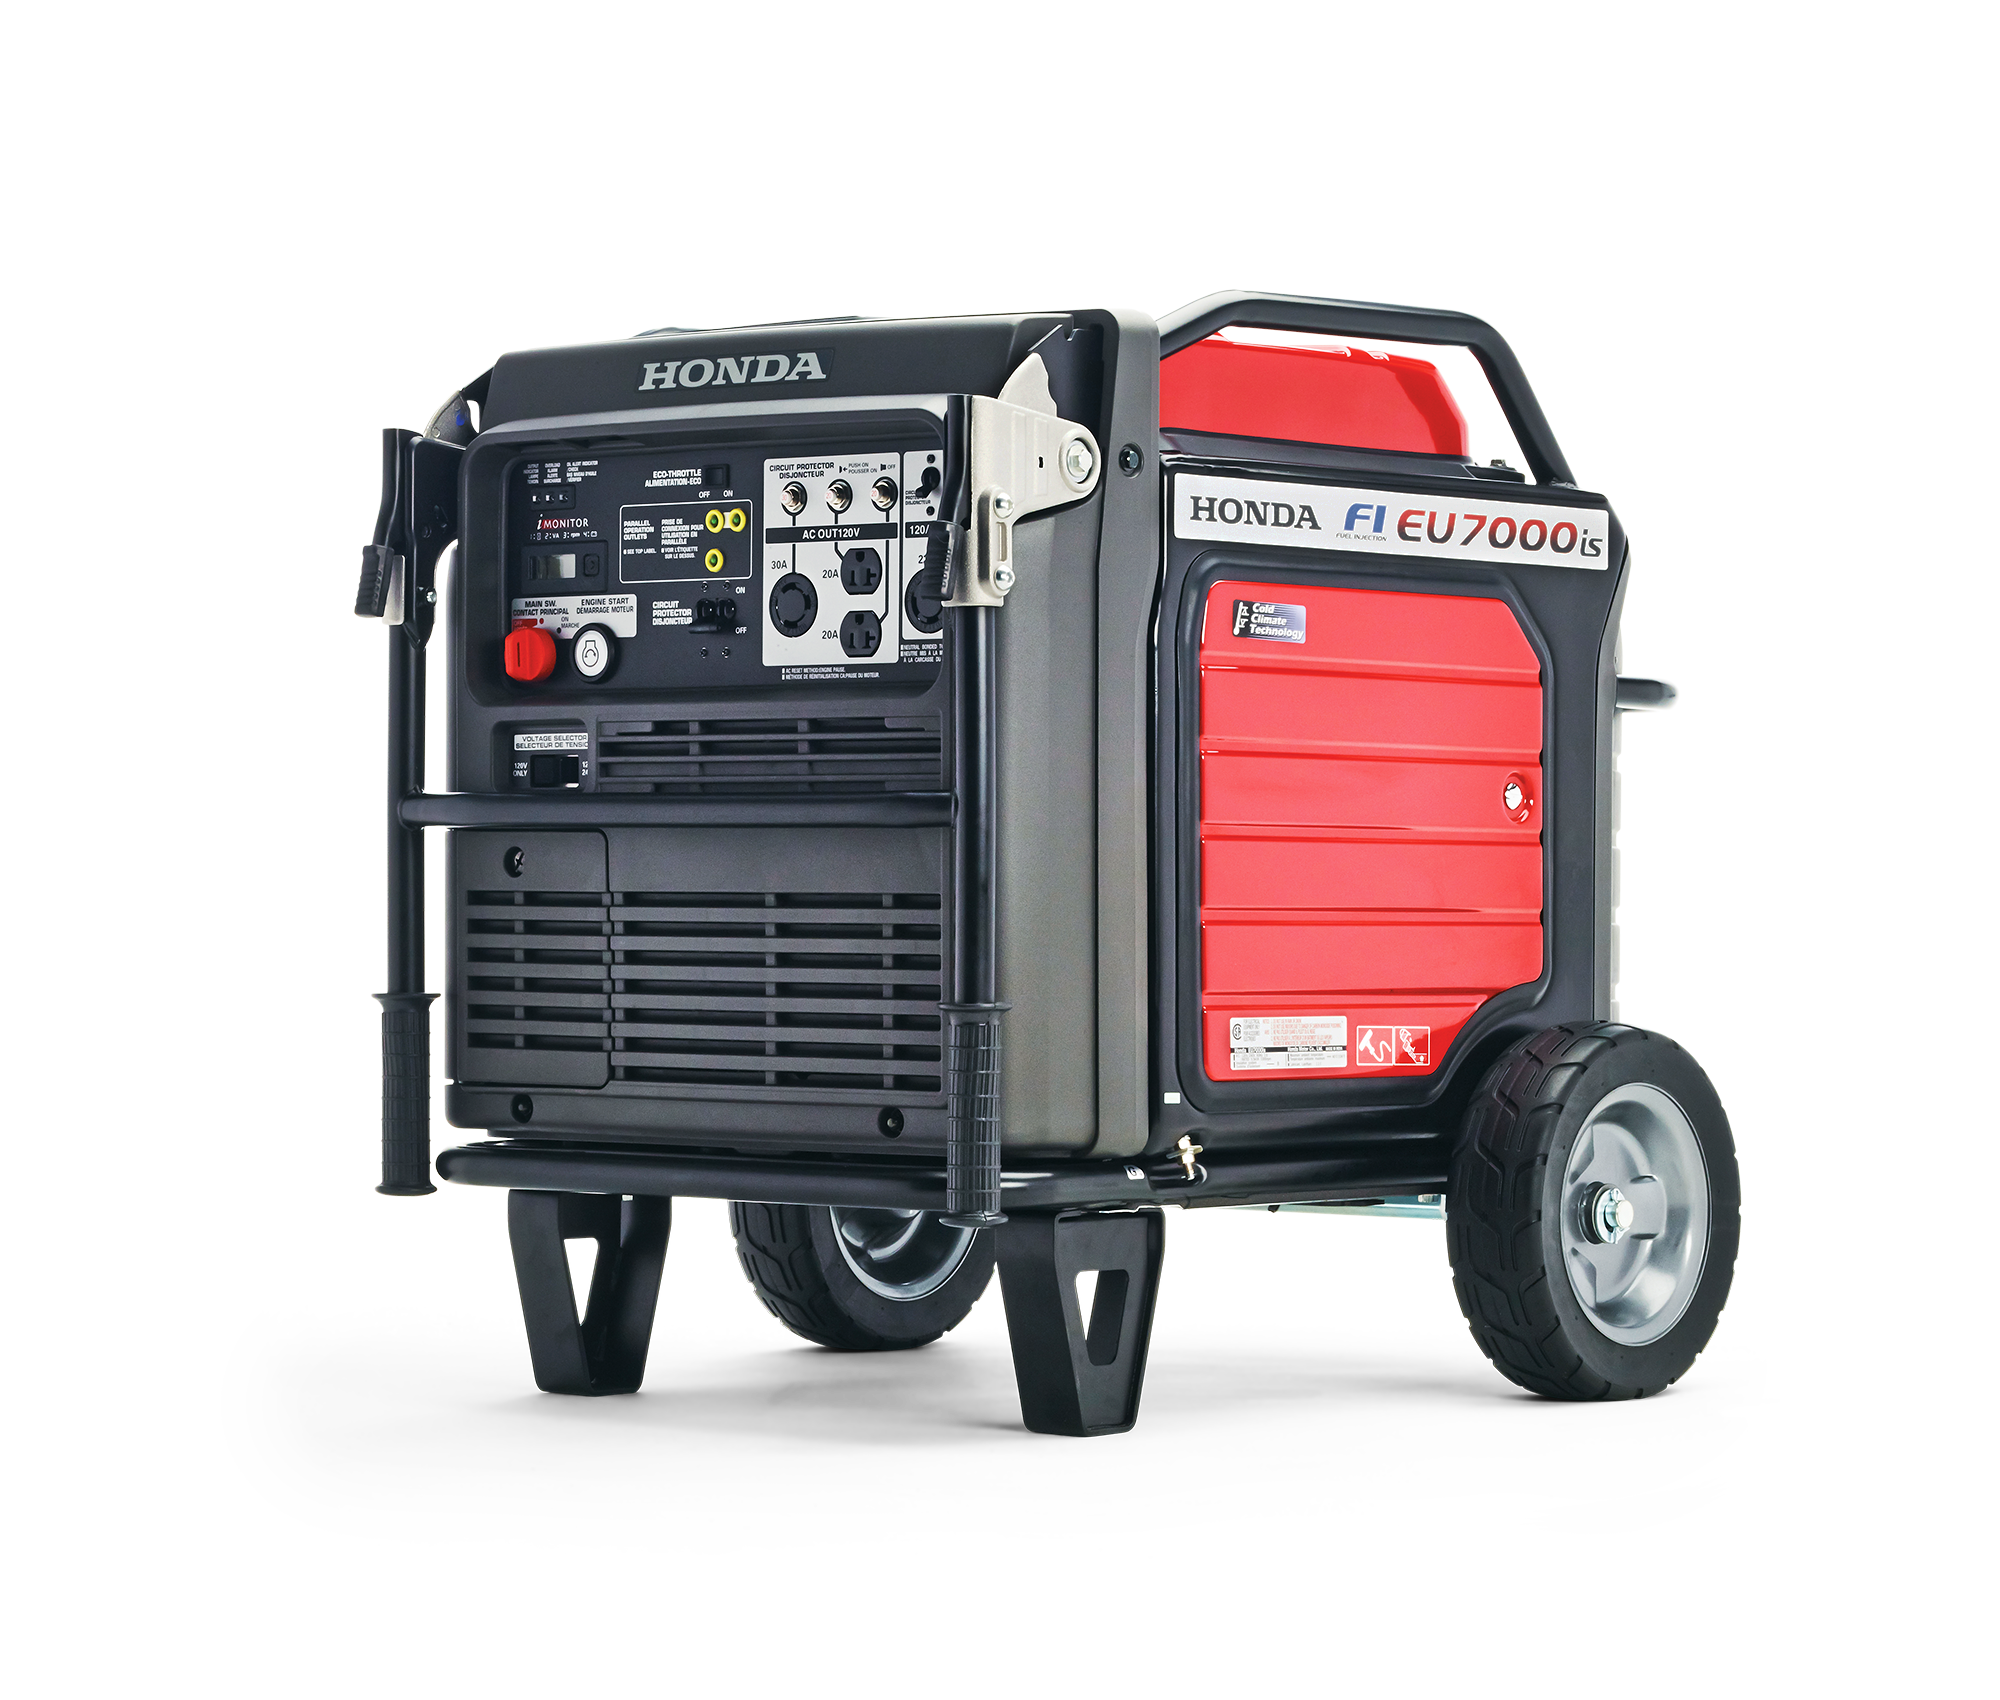 Image of the Ultra-Quiet 7000i ES generator